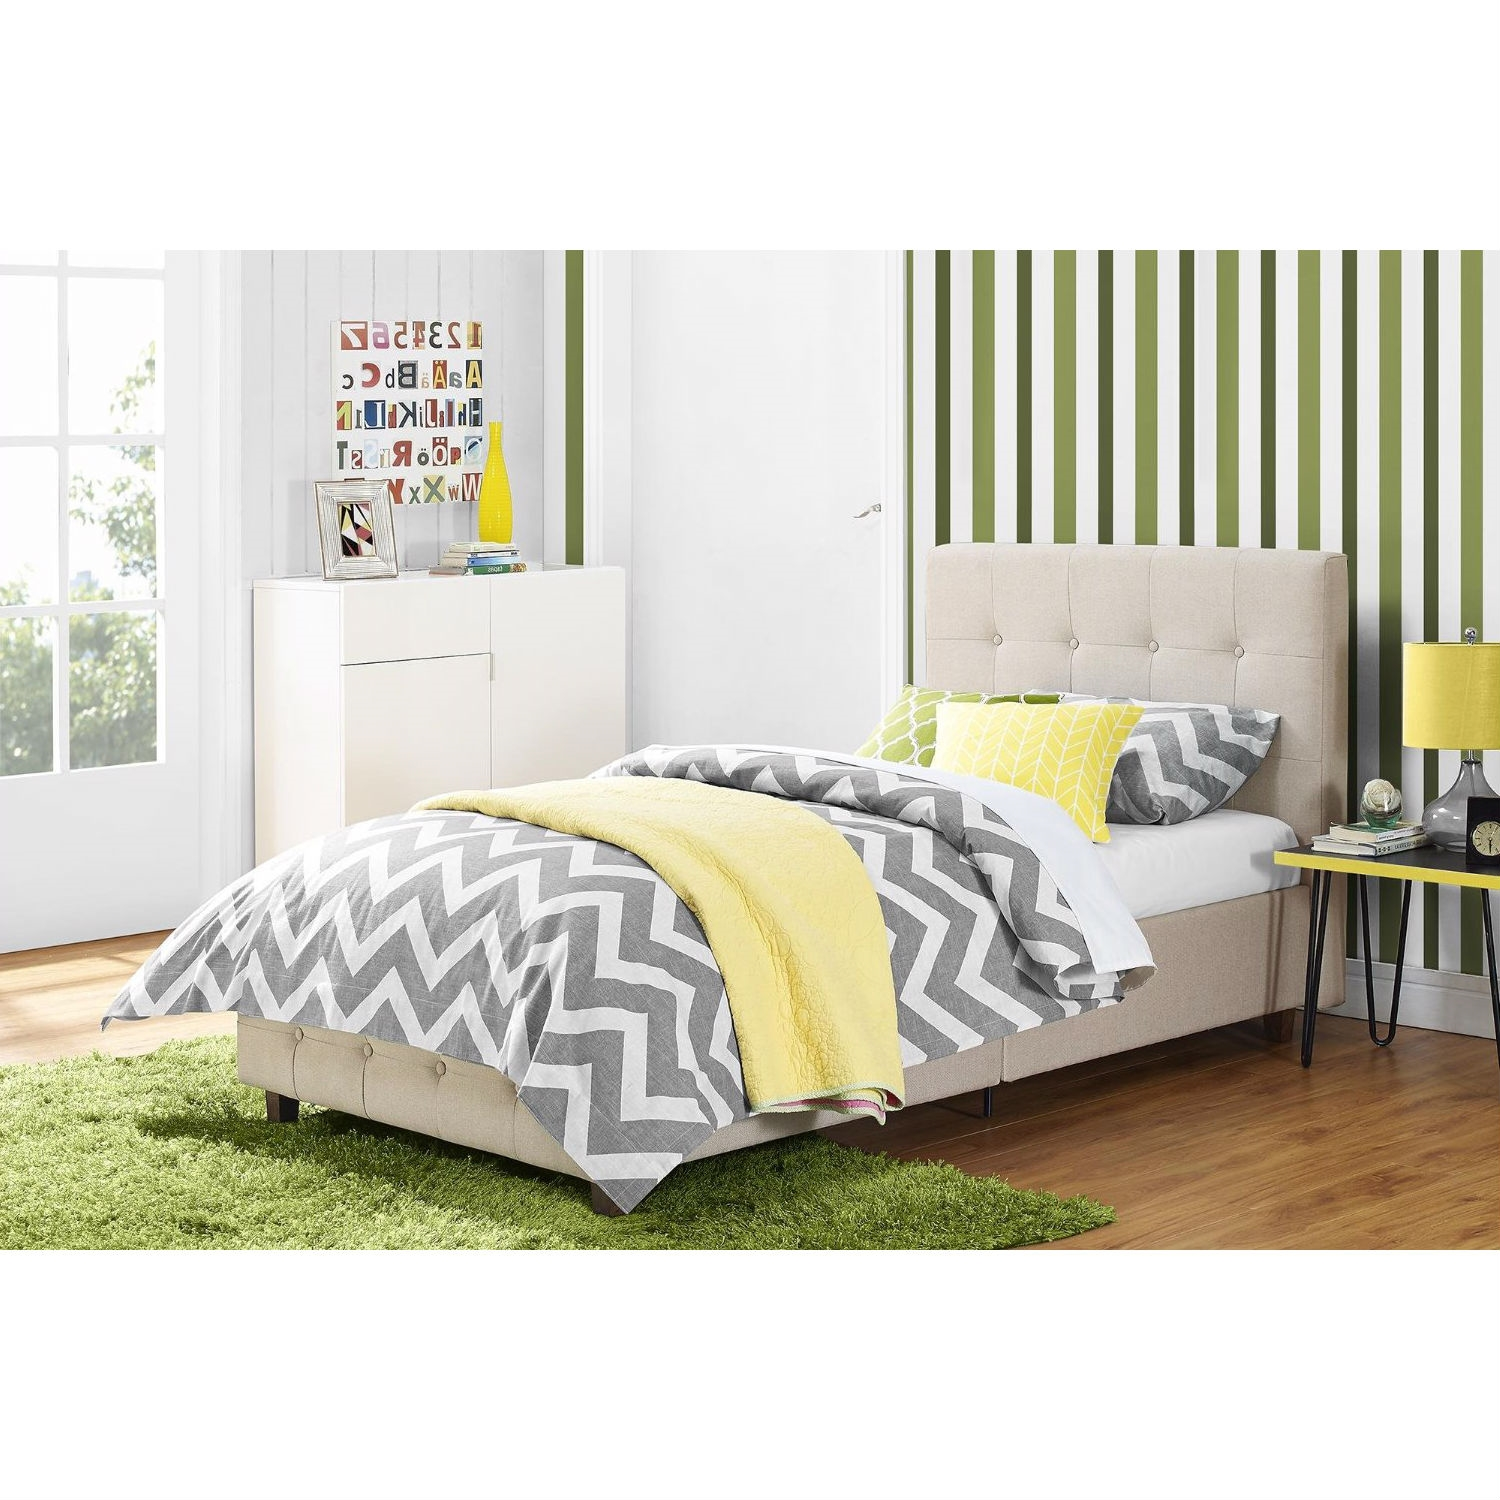 furnitue homebodys bedroom grey headboard bed tufted upholstered button linen with platform